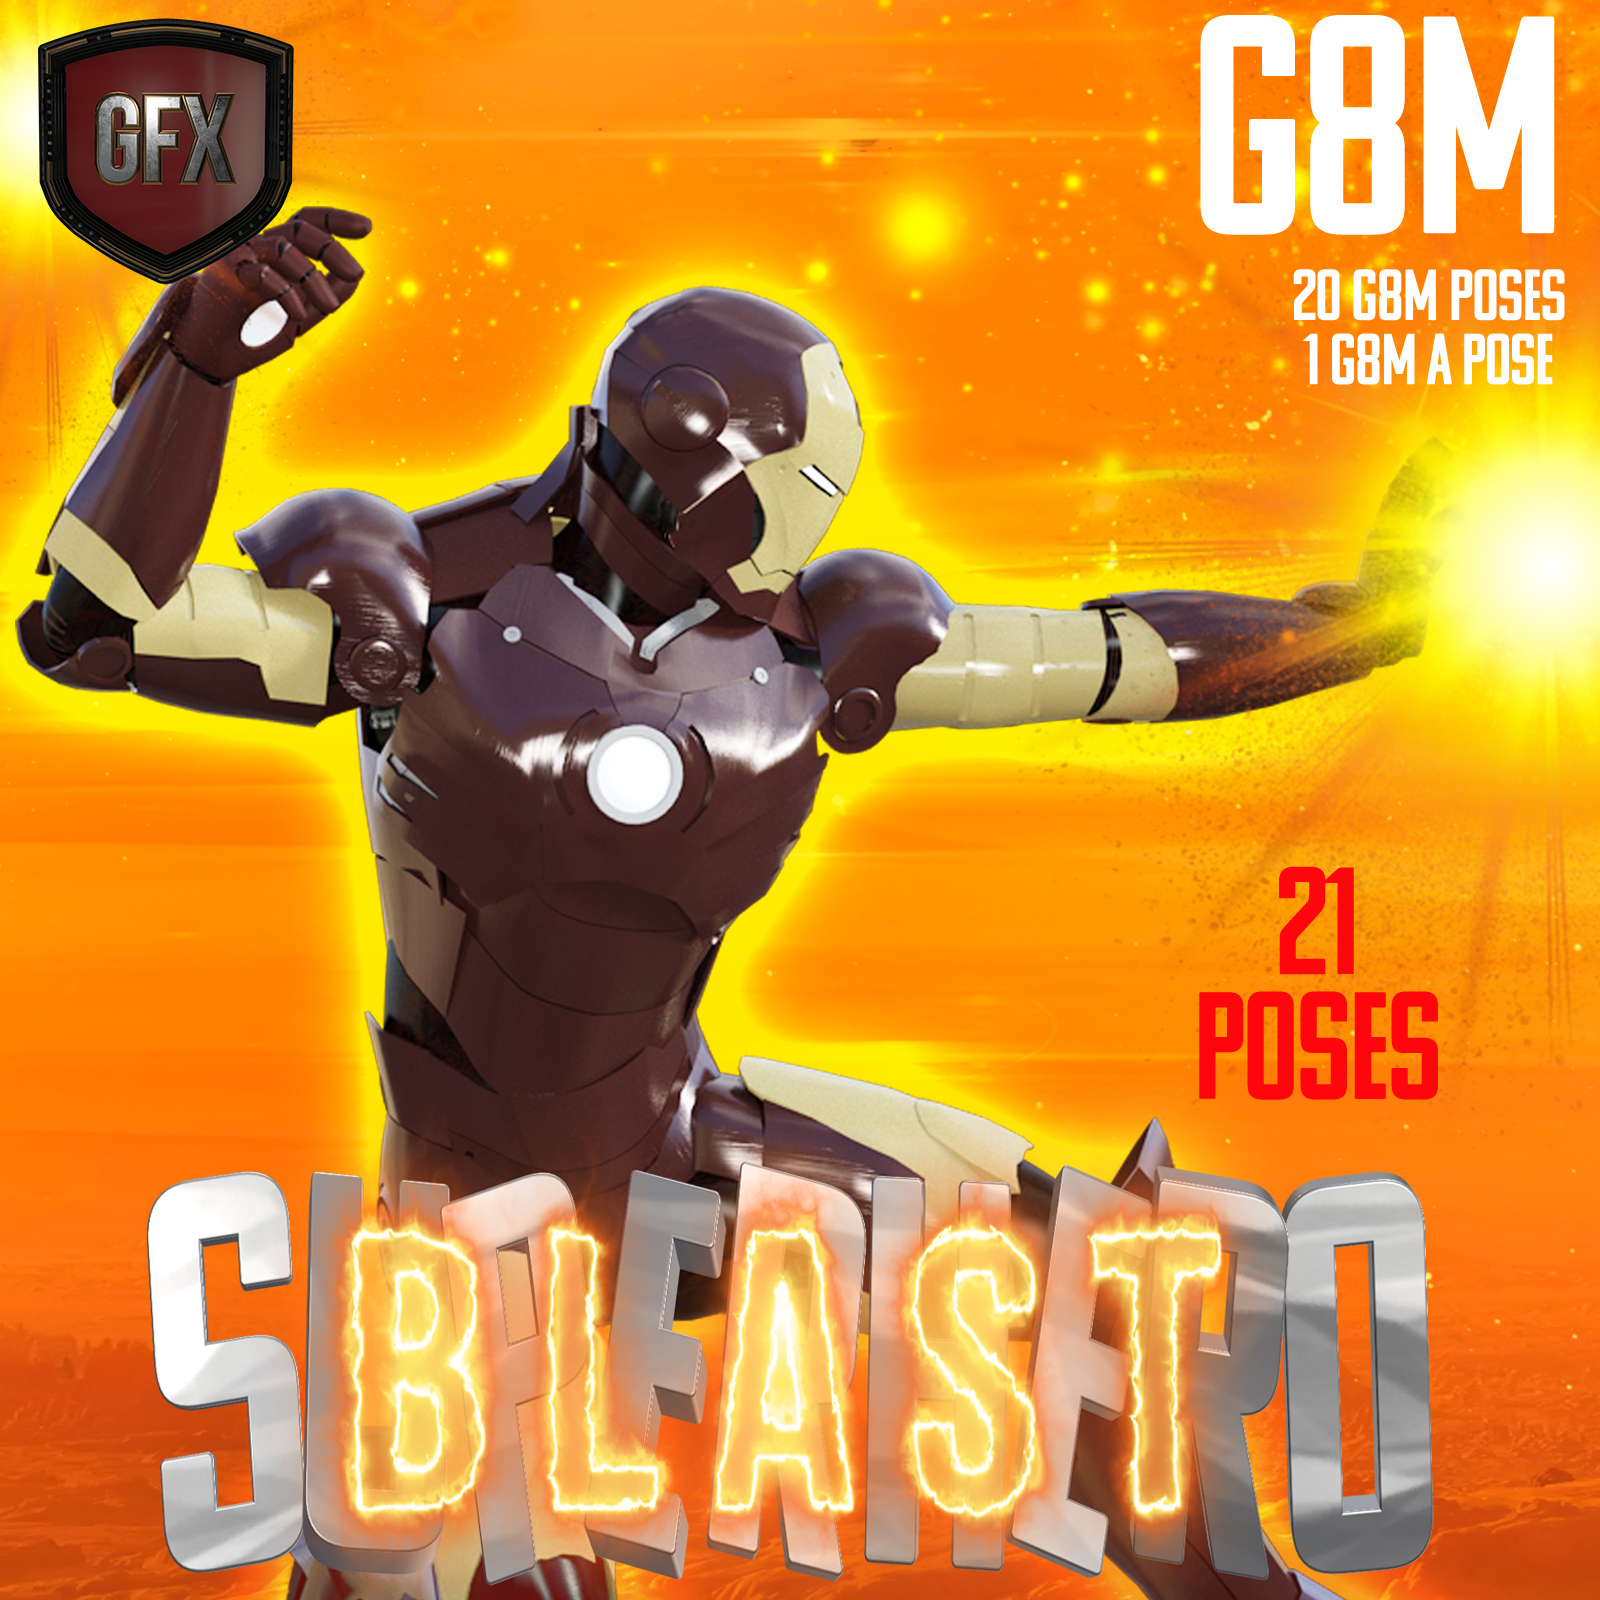 SuperHero Blast for G8M Volume 1 by GriffinFX